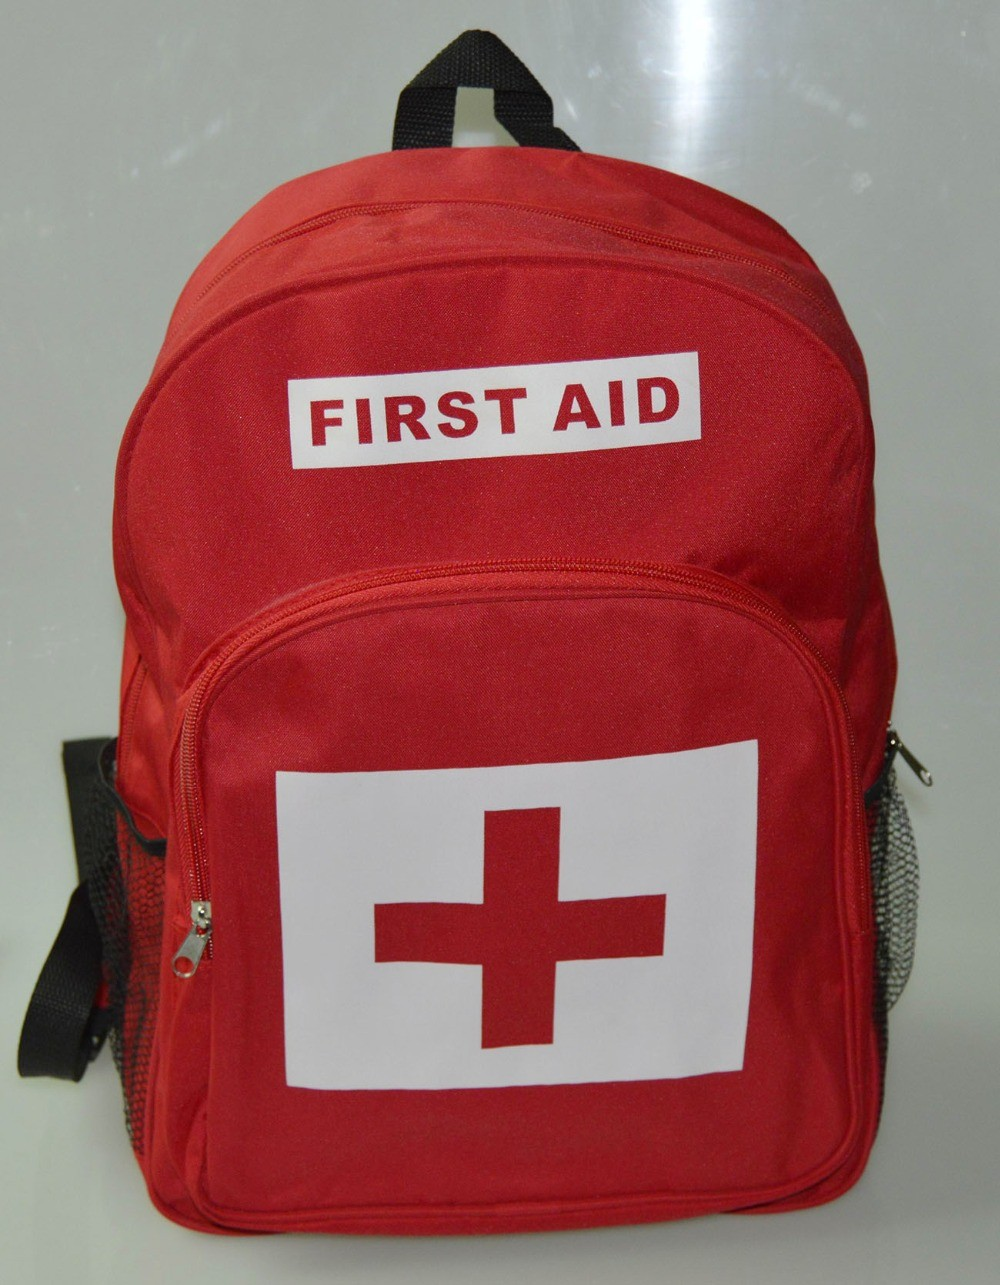 Empty-Bag-Backpack-for-First-Aid-Kit-Survival-Travel-Camping-Hiking-Medical-Emergency-Kits-Pack-Safe (2)